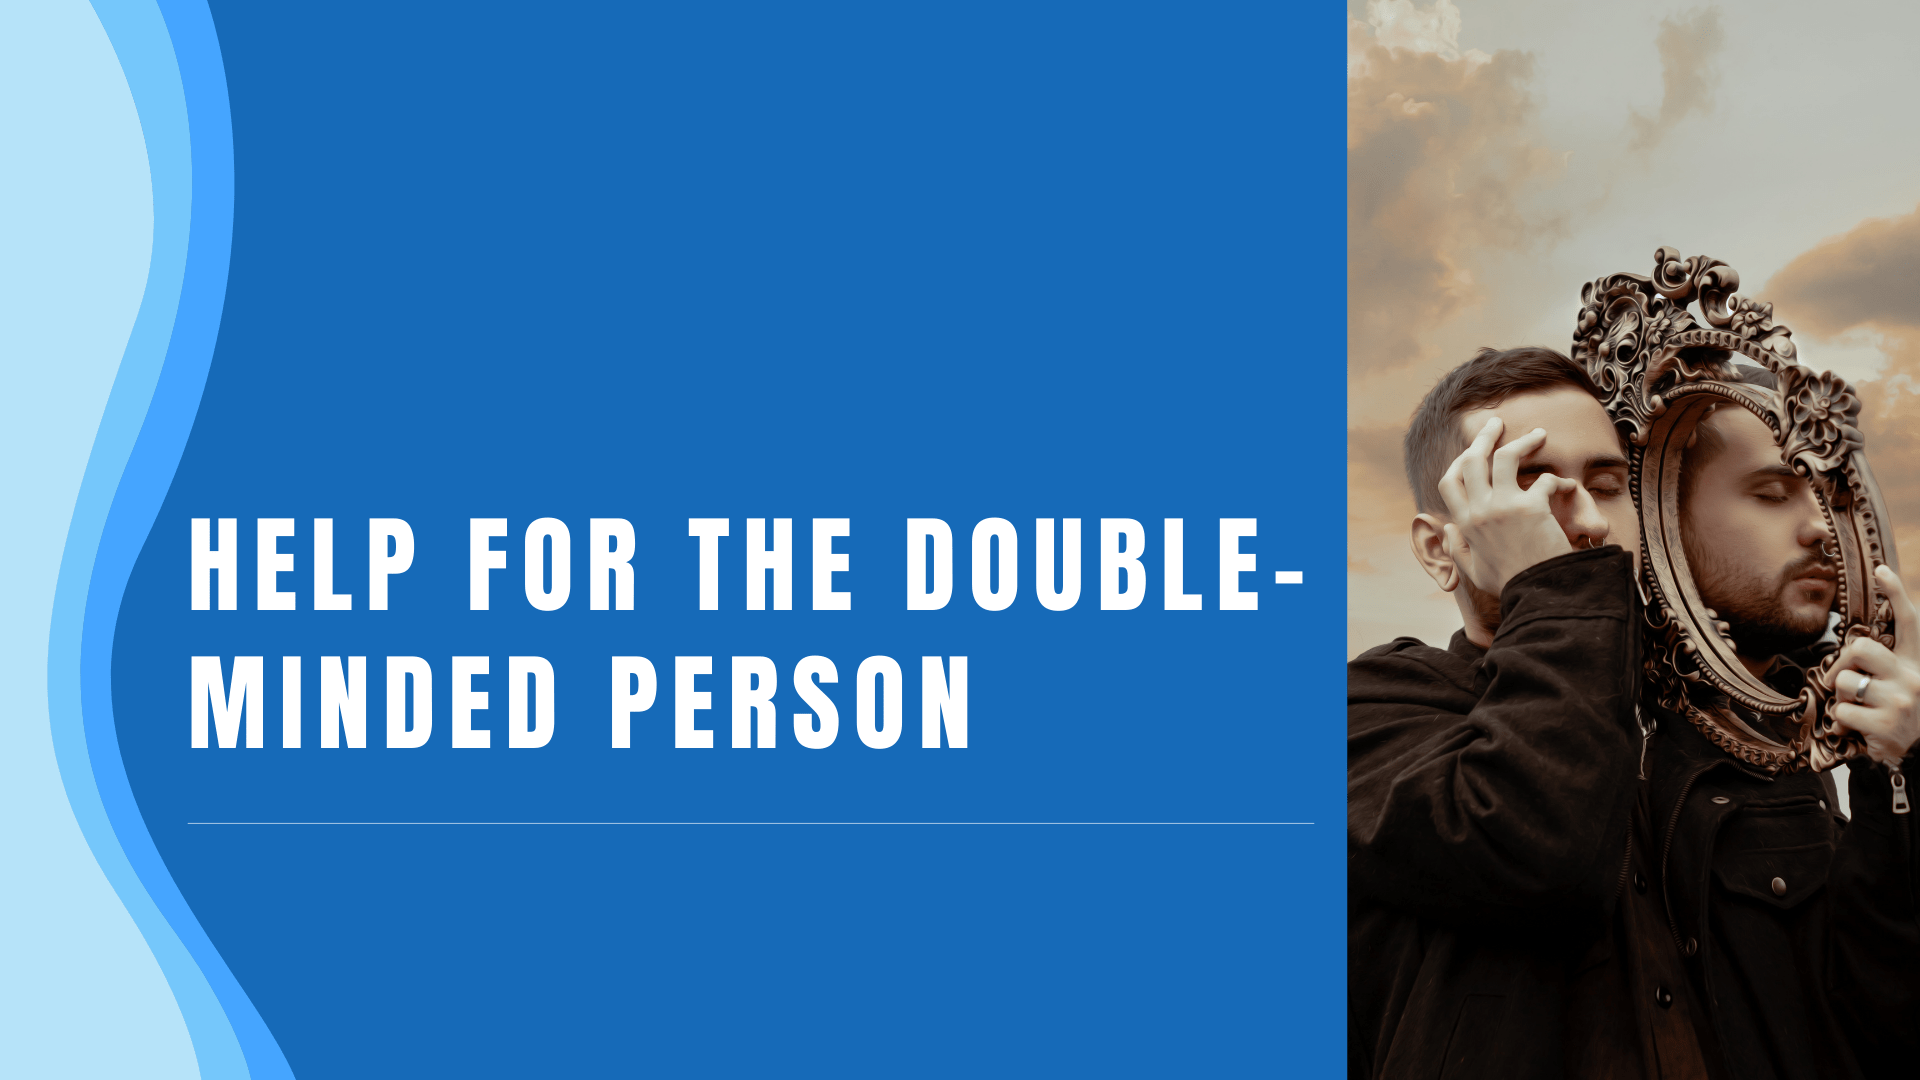 Help for the Double-Minded Person